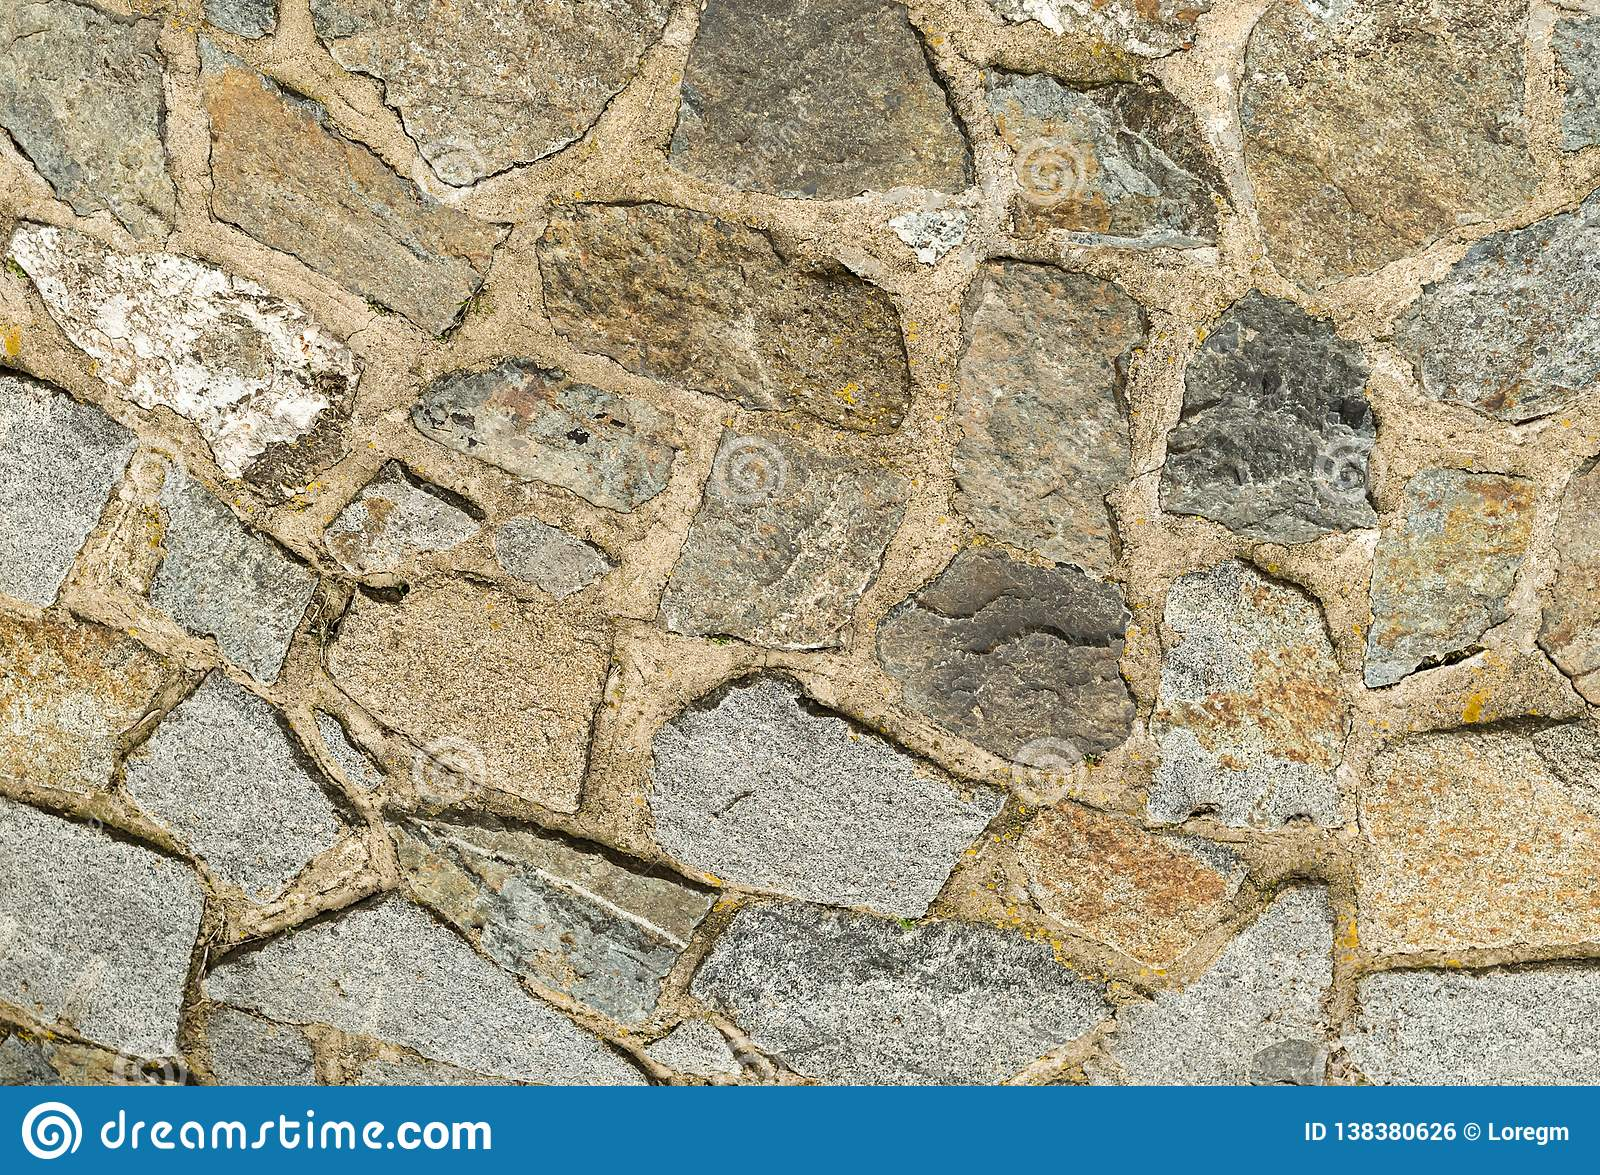 Base city many set of stones texture granite gray wide seams cementary cohesive stiff pattern base pattern cobbles